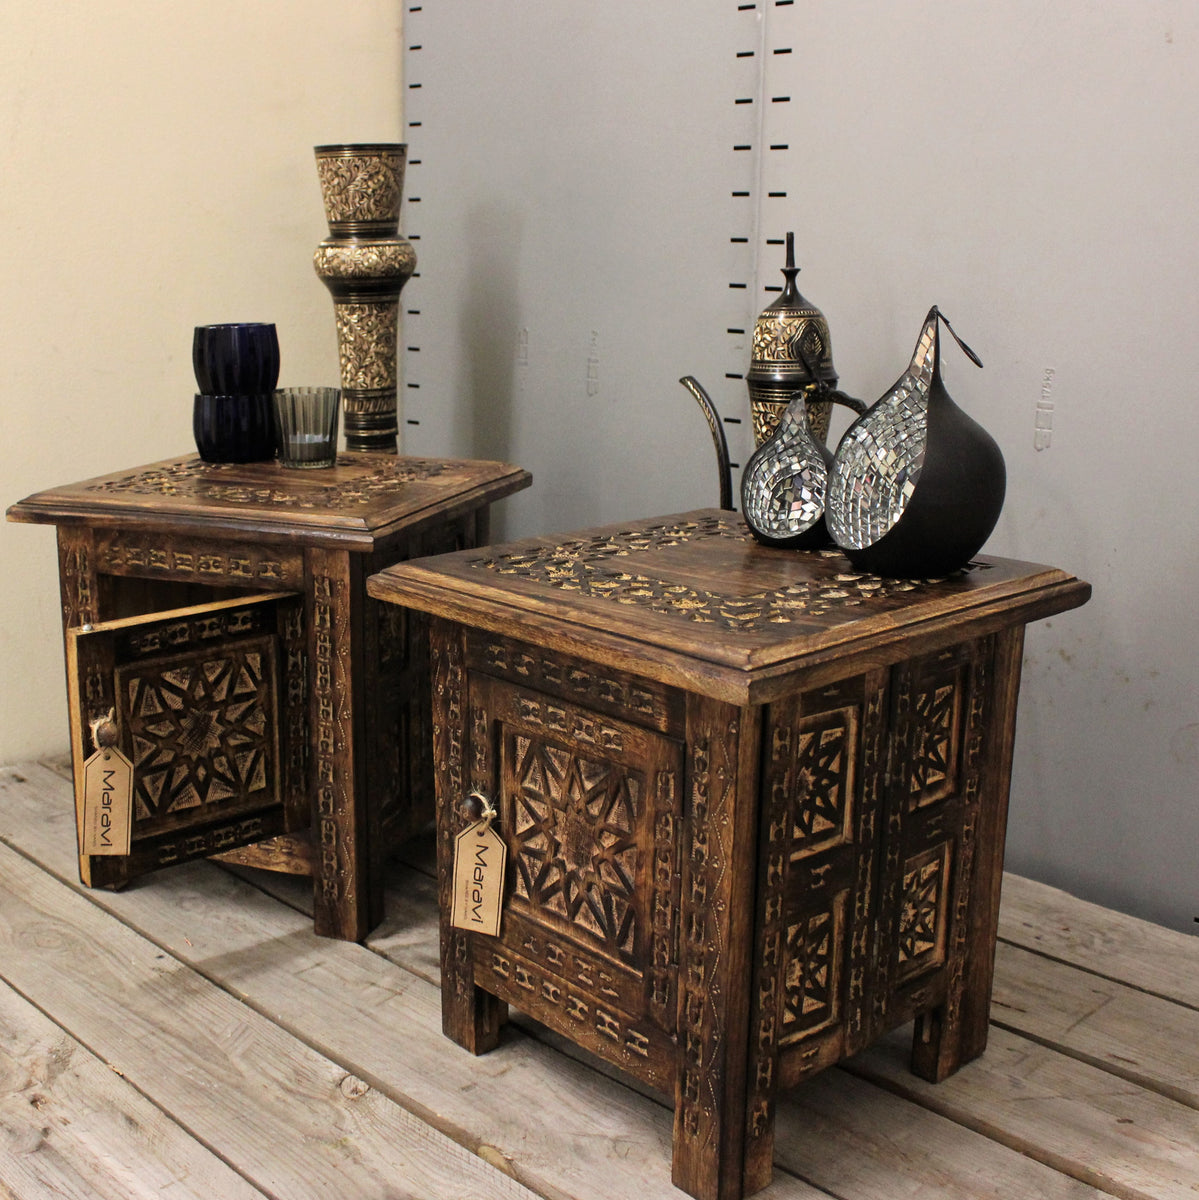 Rupicola Small Square Side Tables Moroccan Style Set of 2